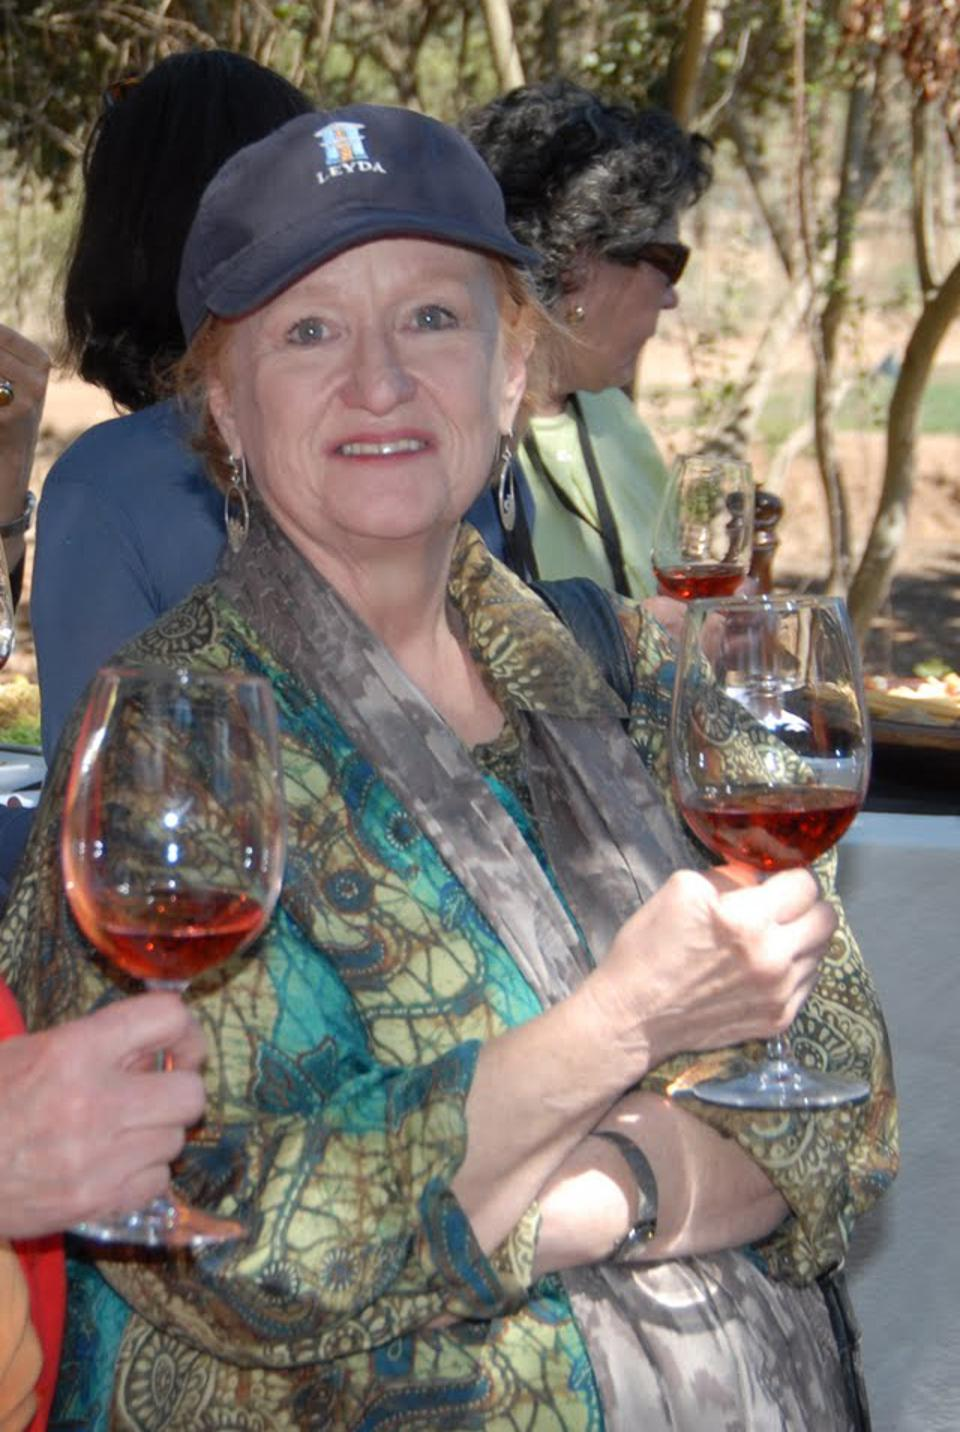 Diane Teitelbaum was a Dallas-based wine writer, global judge and founding member of Les Dames d'Escoffier in Dallas.